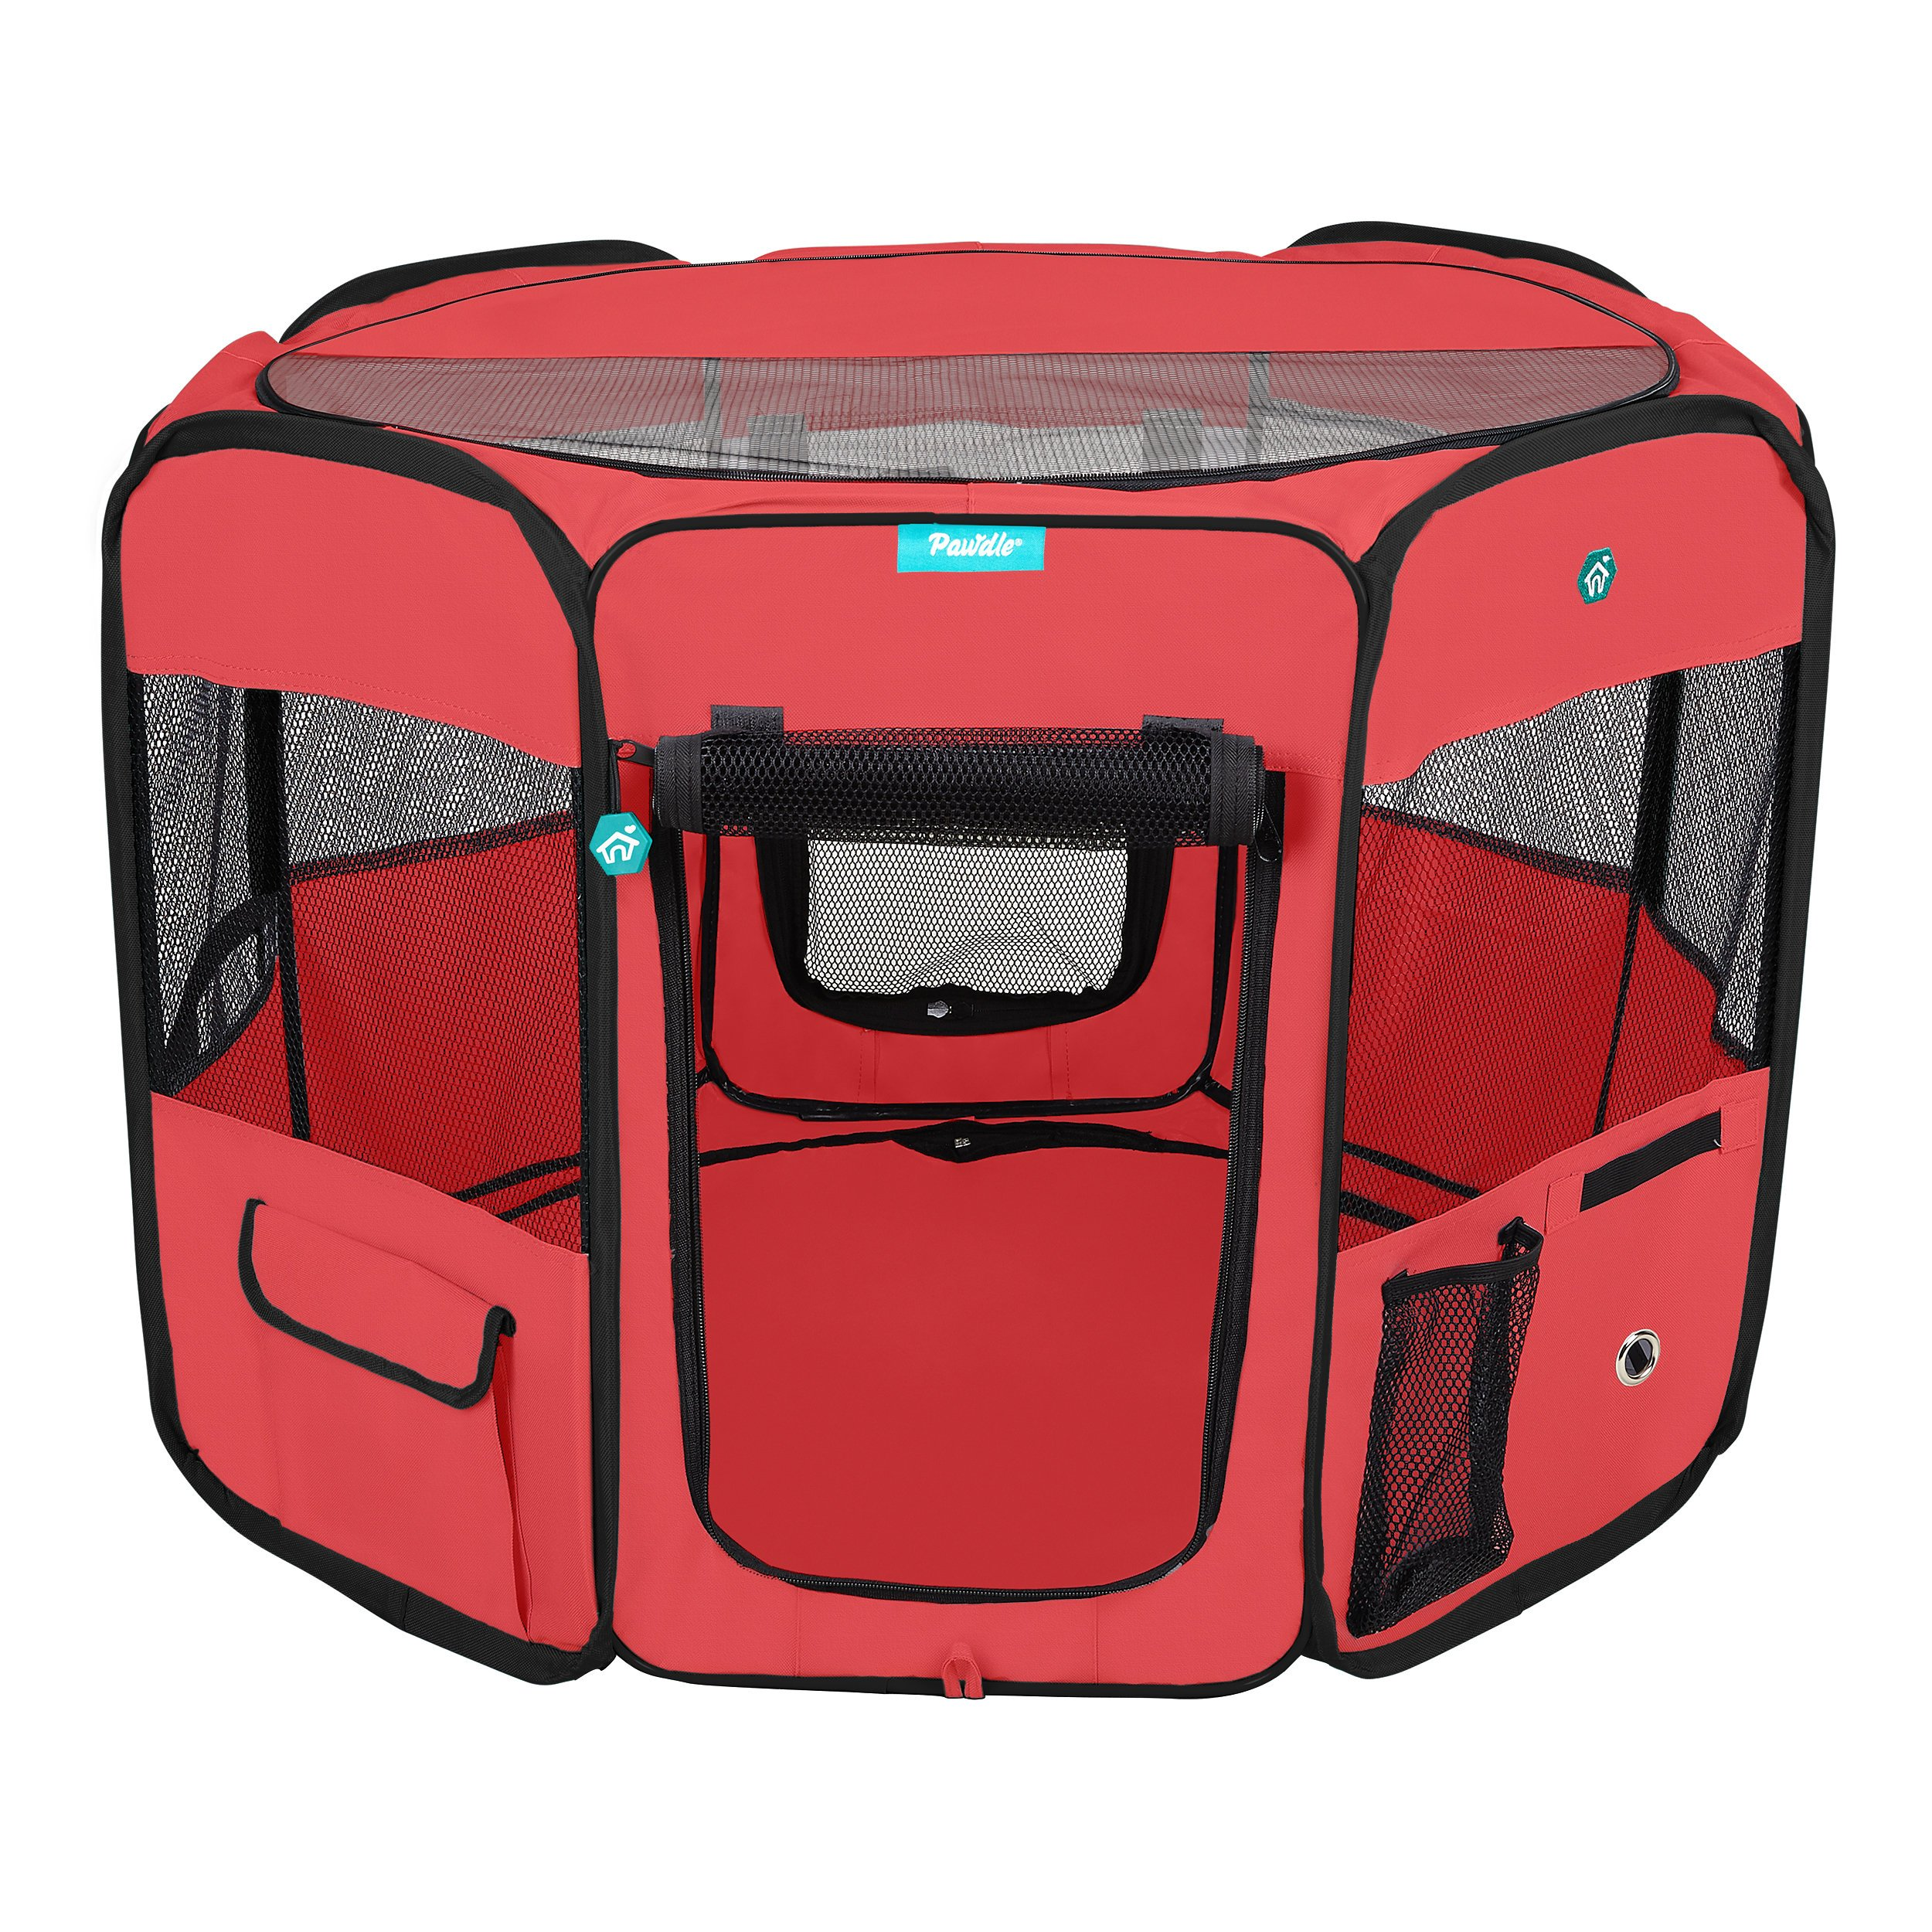 Deluxe Premium Pet Dog Playpen Portable Soft Dog Exercise Pen Kennel with Carry Bag for Dogs, Cats, Kittens, and All Pets (Medium, Red) by Pawdle